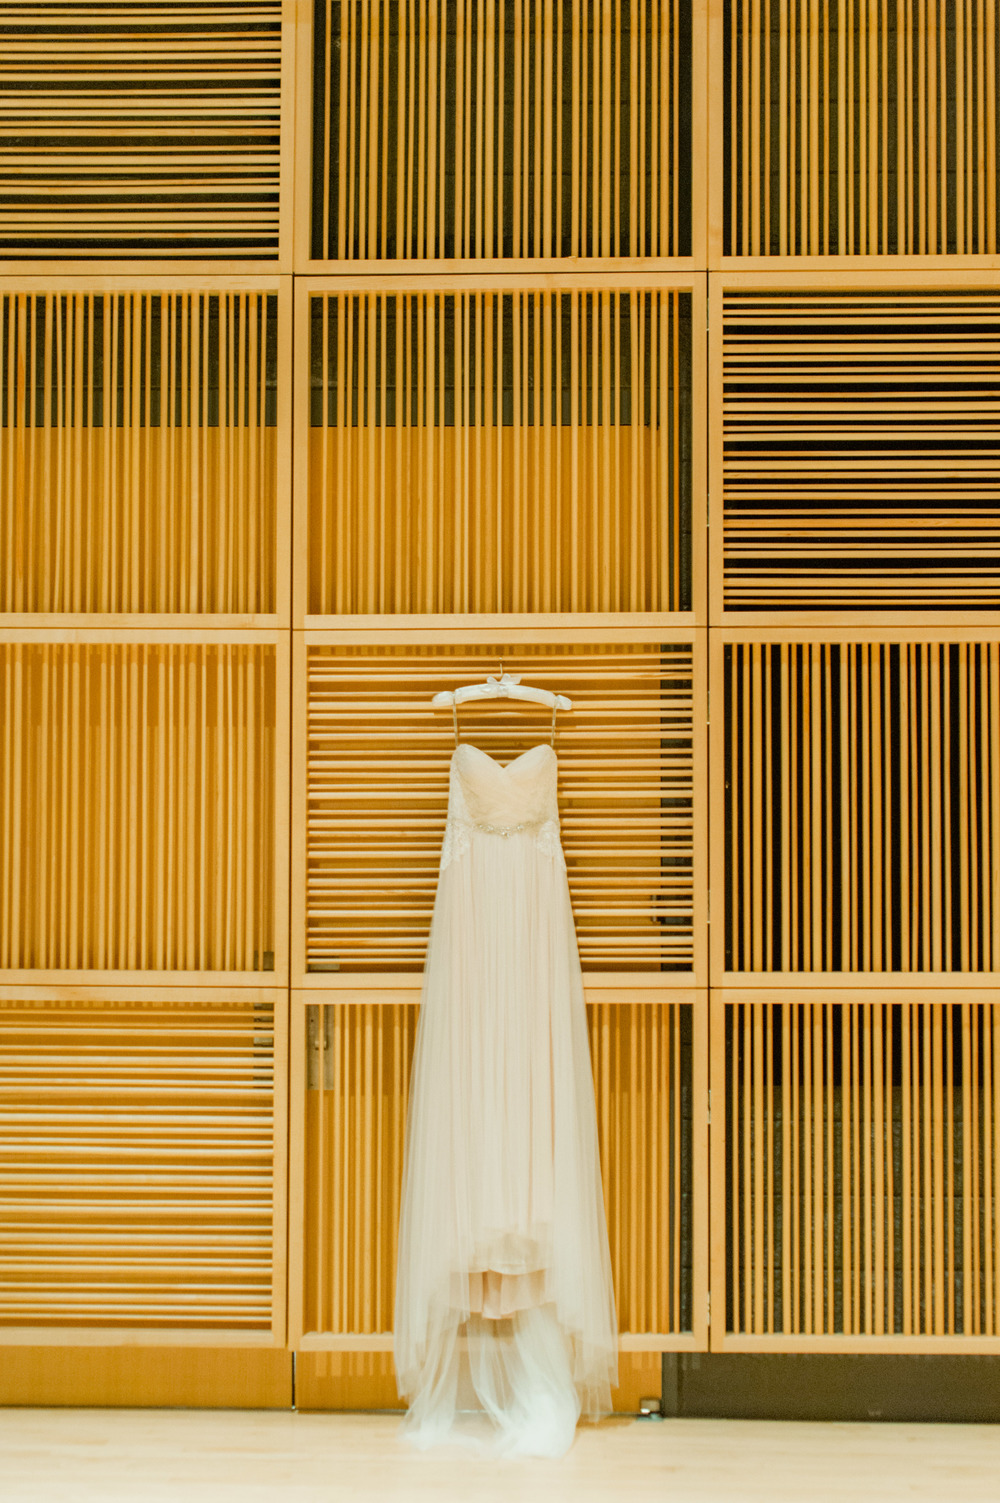 omaha-holland-arts-center-wedding-8.jpg